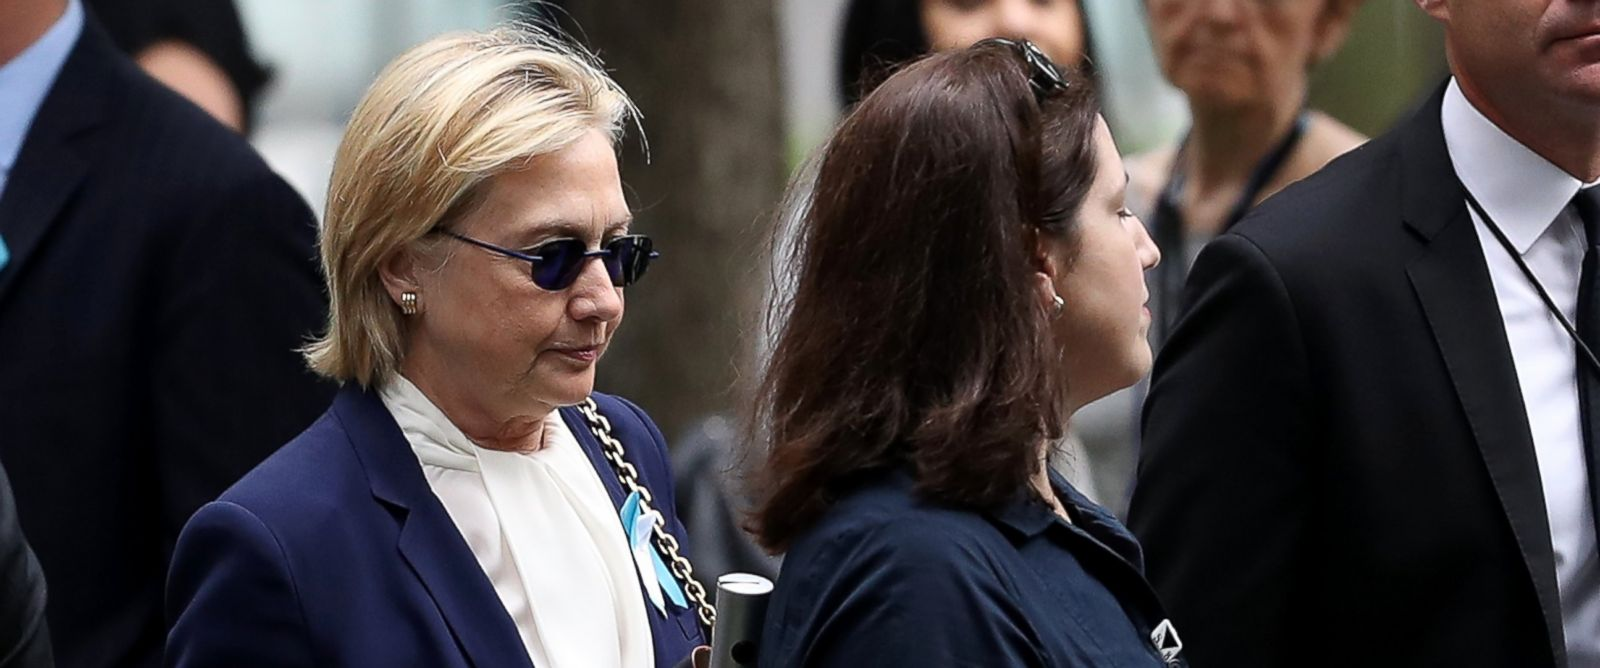 PHOTO: Democratic presidental nominee former Secretary of State Hillary Clinton arrives with an unidentified woman at the September 11 Commemoration Ceremony at the National September 11 Memorial & Museum, on Sept. 11, 2016, in New York City.